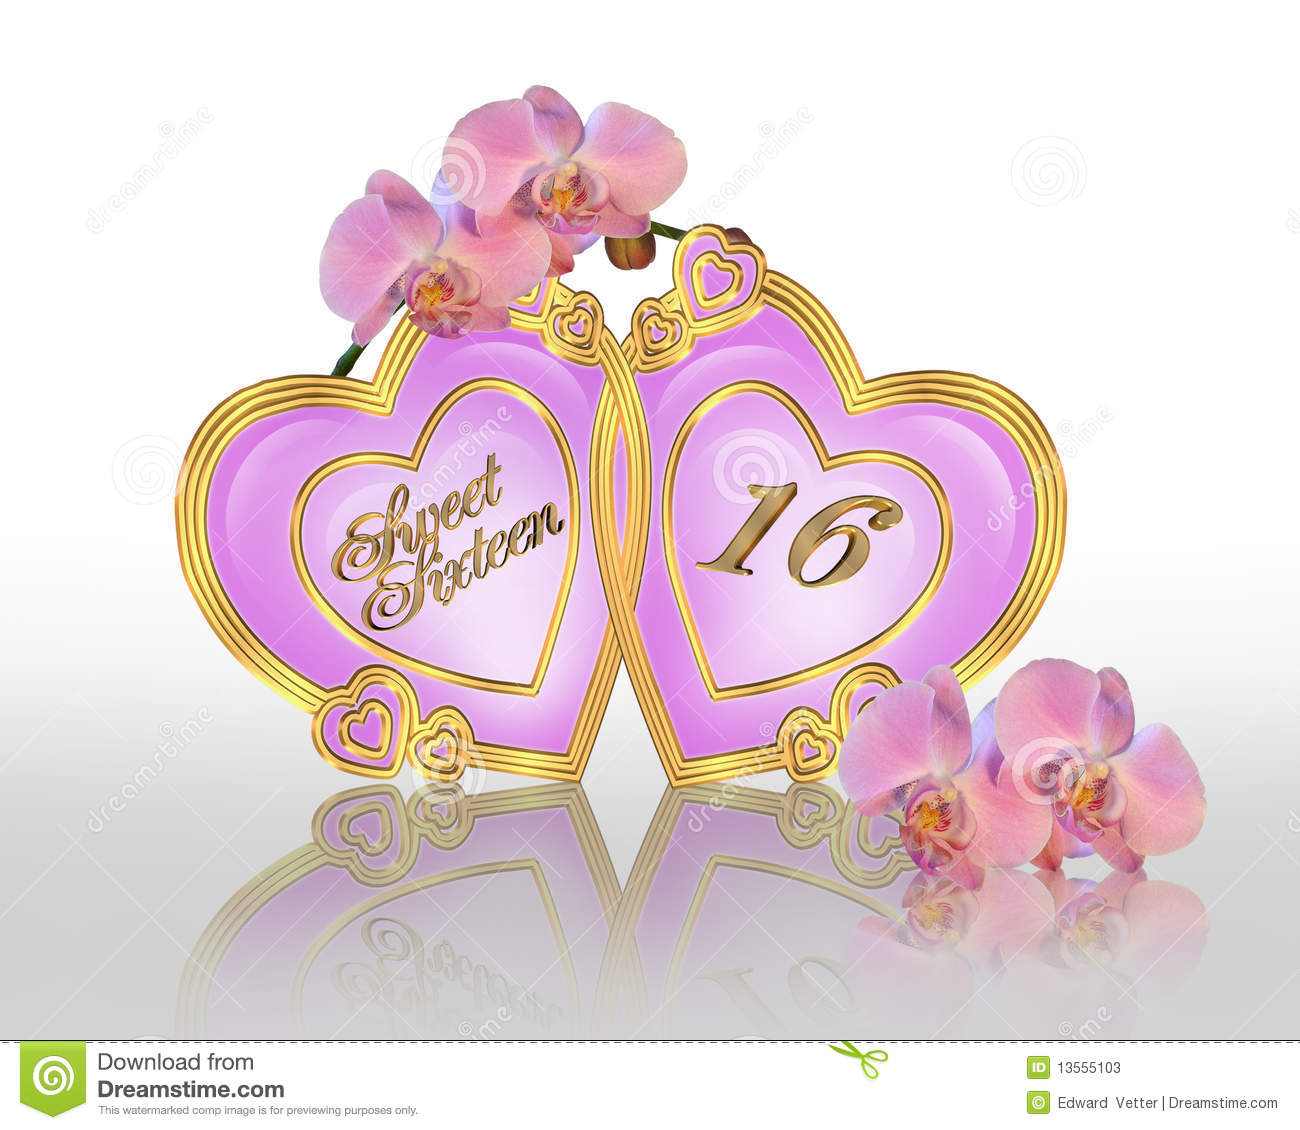 ... pink orchids for sweet 16 birthday party invitation or greeting card